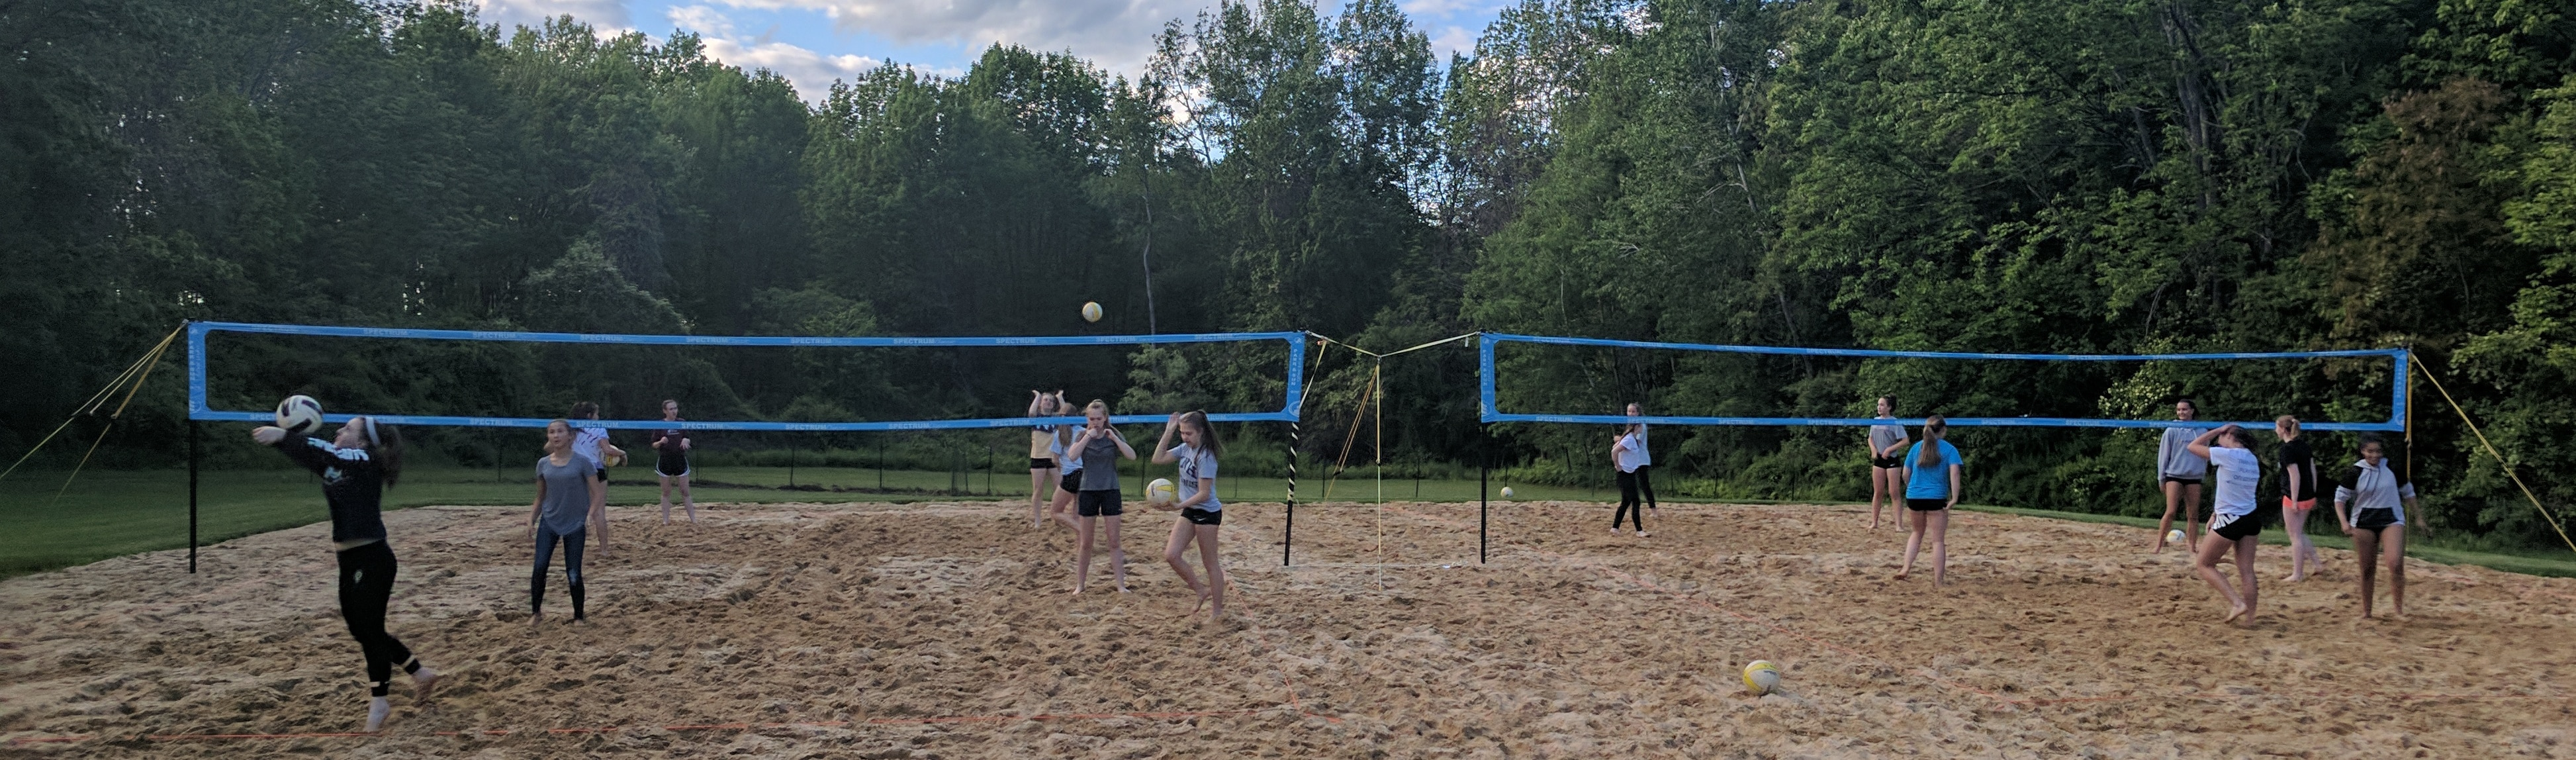 Great Bay Volleyball Club, Volleyball, Competence Builds Confidence, Court